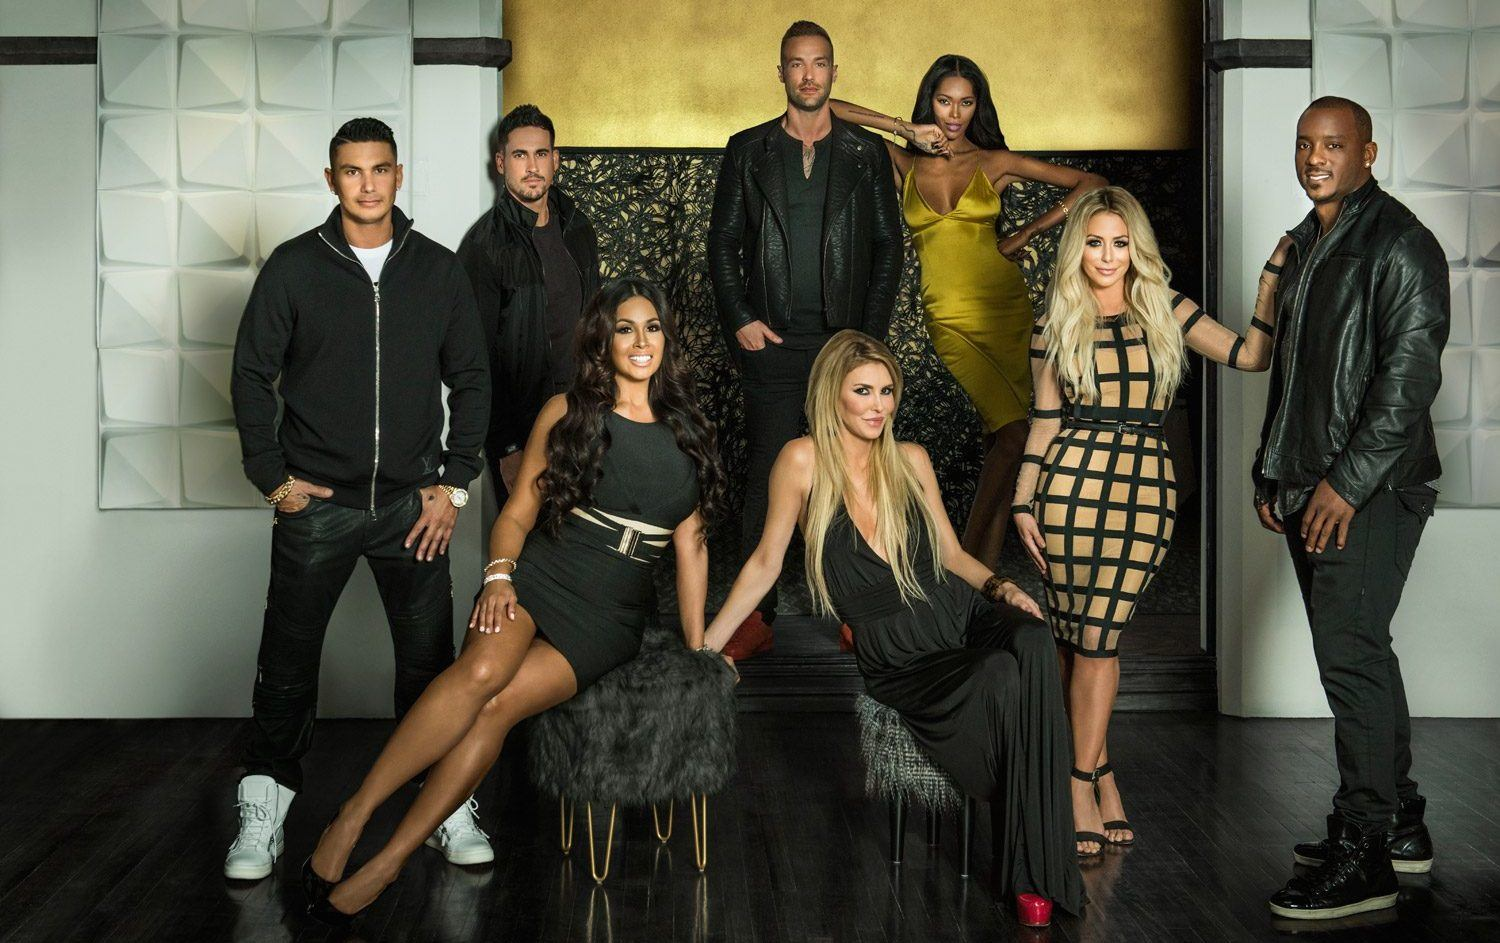 The Cast of Famously Single